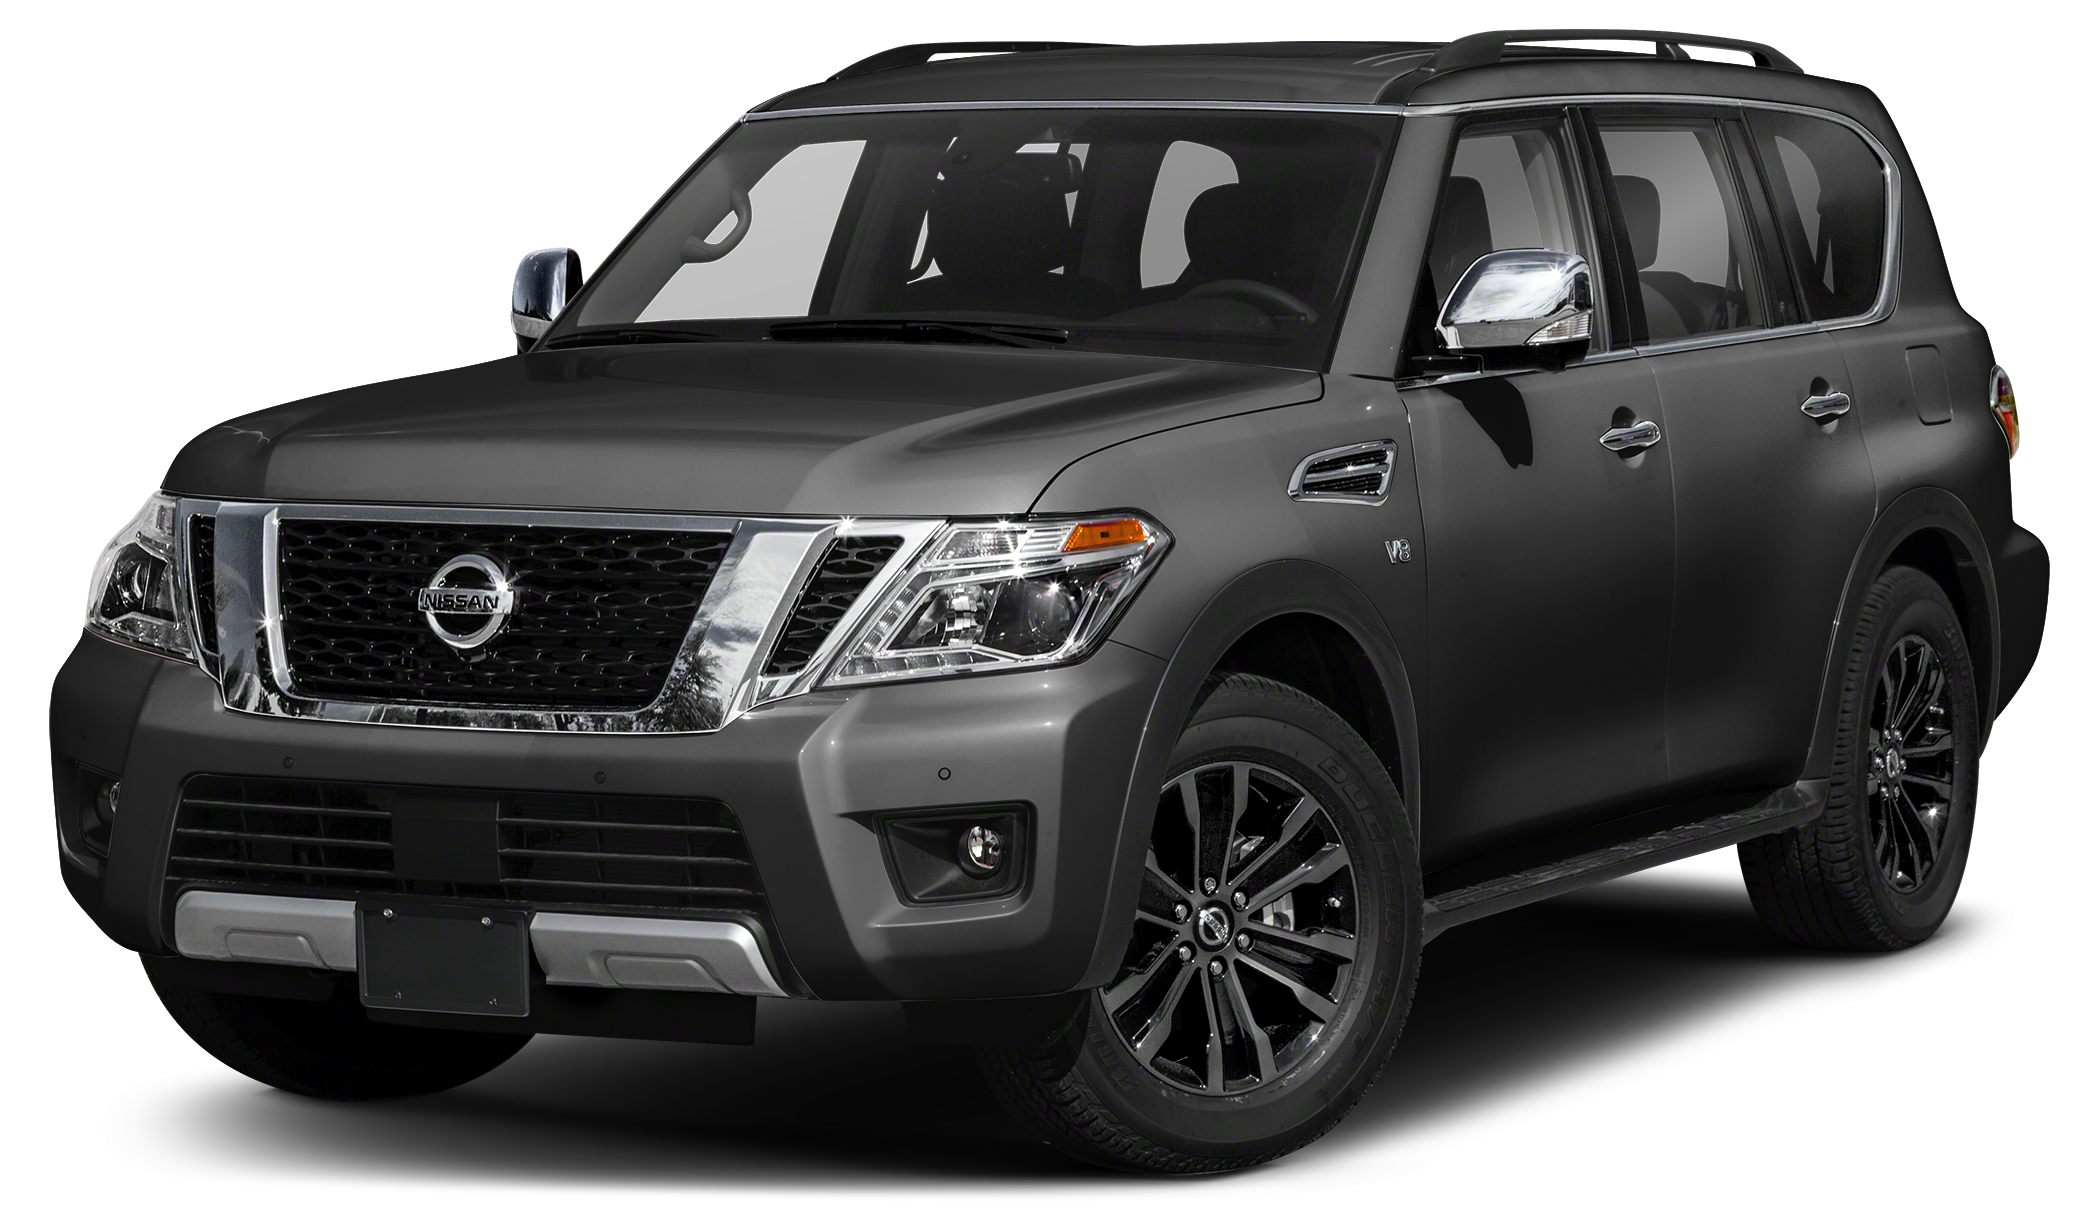 2017 Nissan Armada Platinum PLATINUM PACKAGE 4X4 DVD PLAYERS NAVIGATION MOONROOF